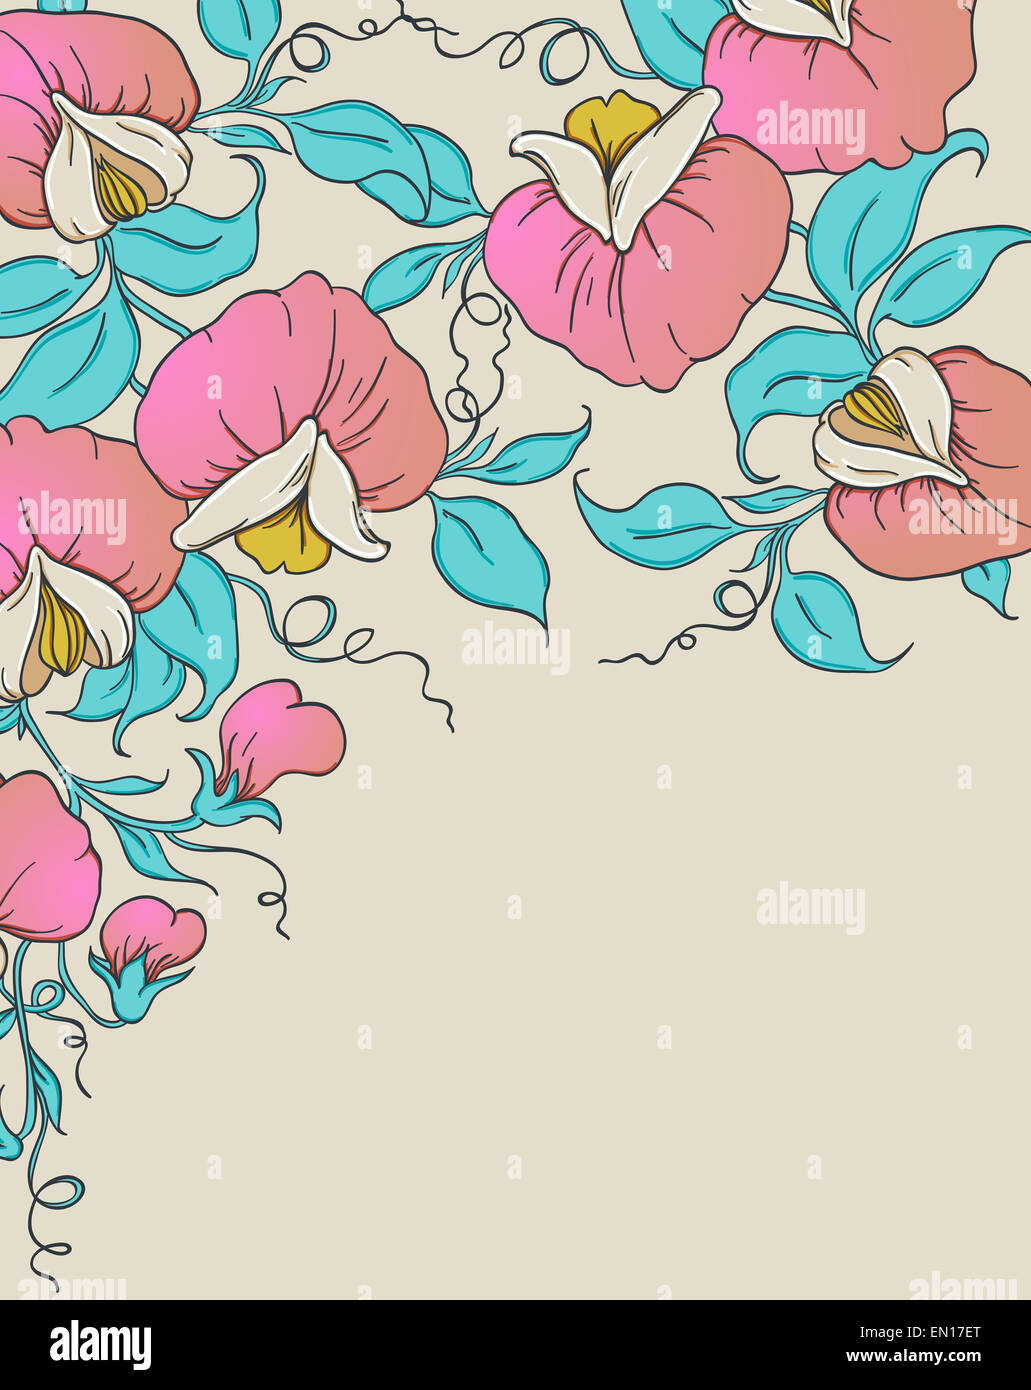 Floral background with pink sweet pea - Stock Image